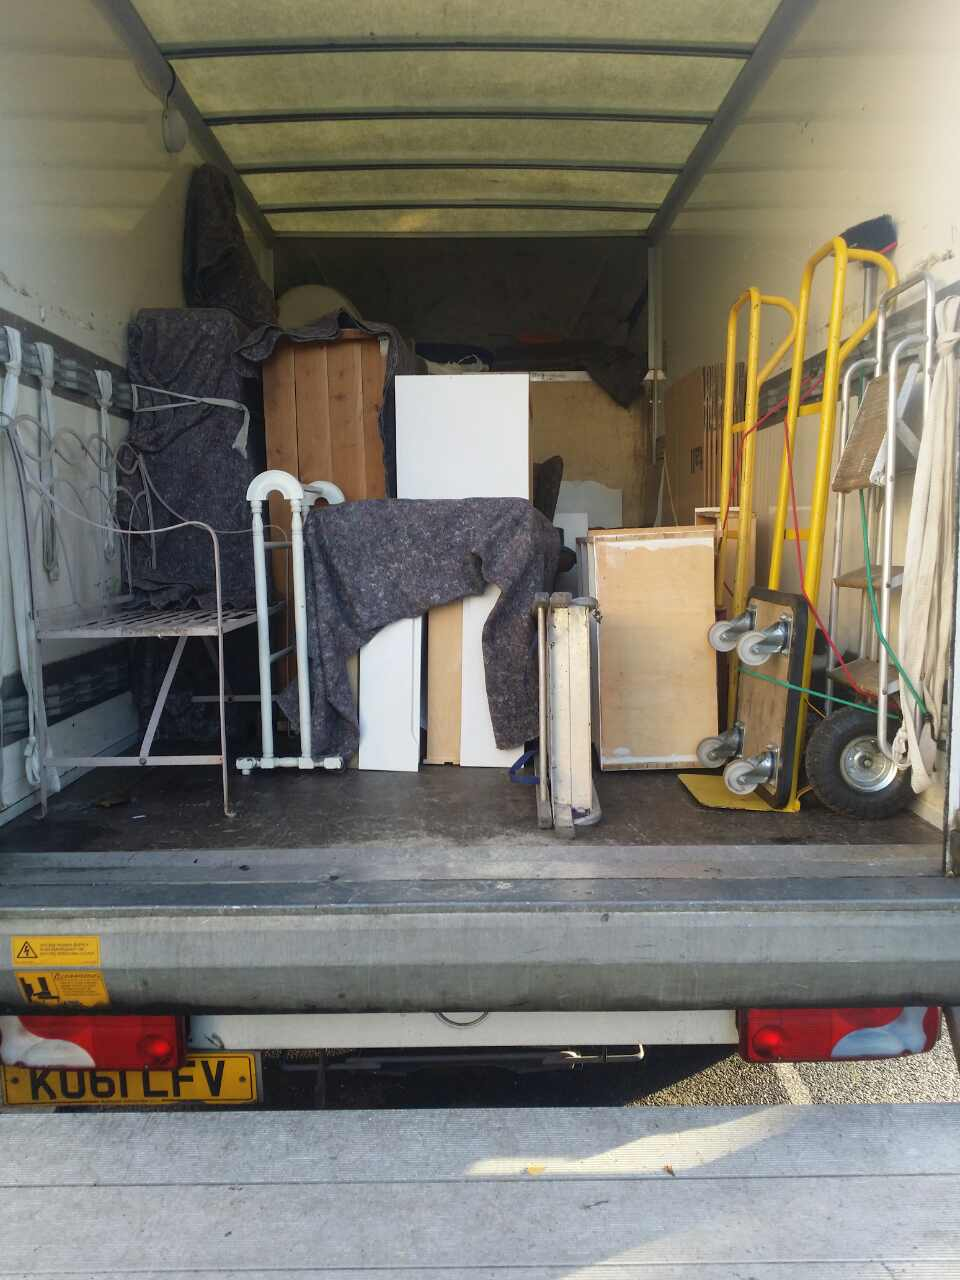 KT2 movers in Norbiton